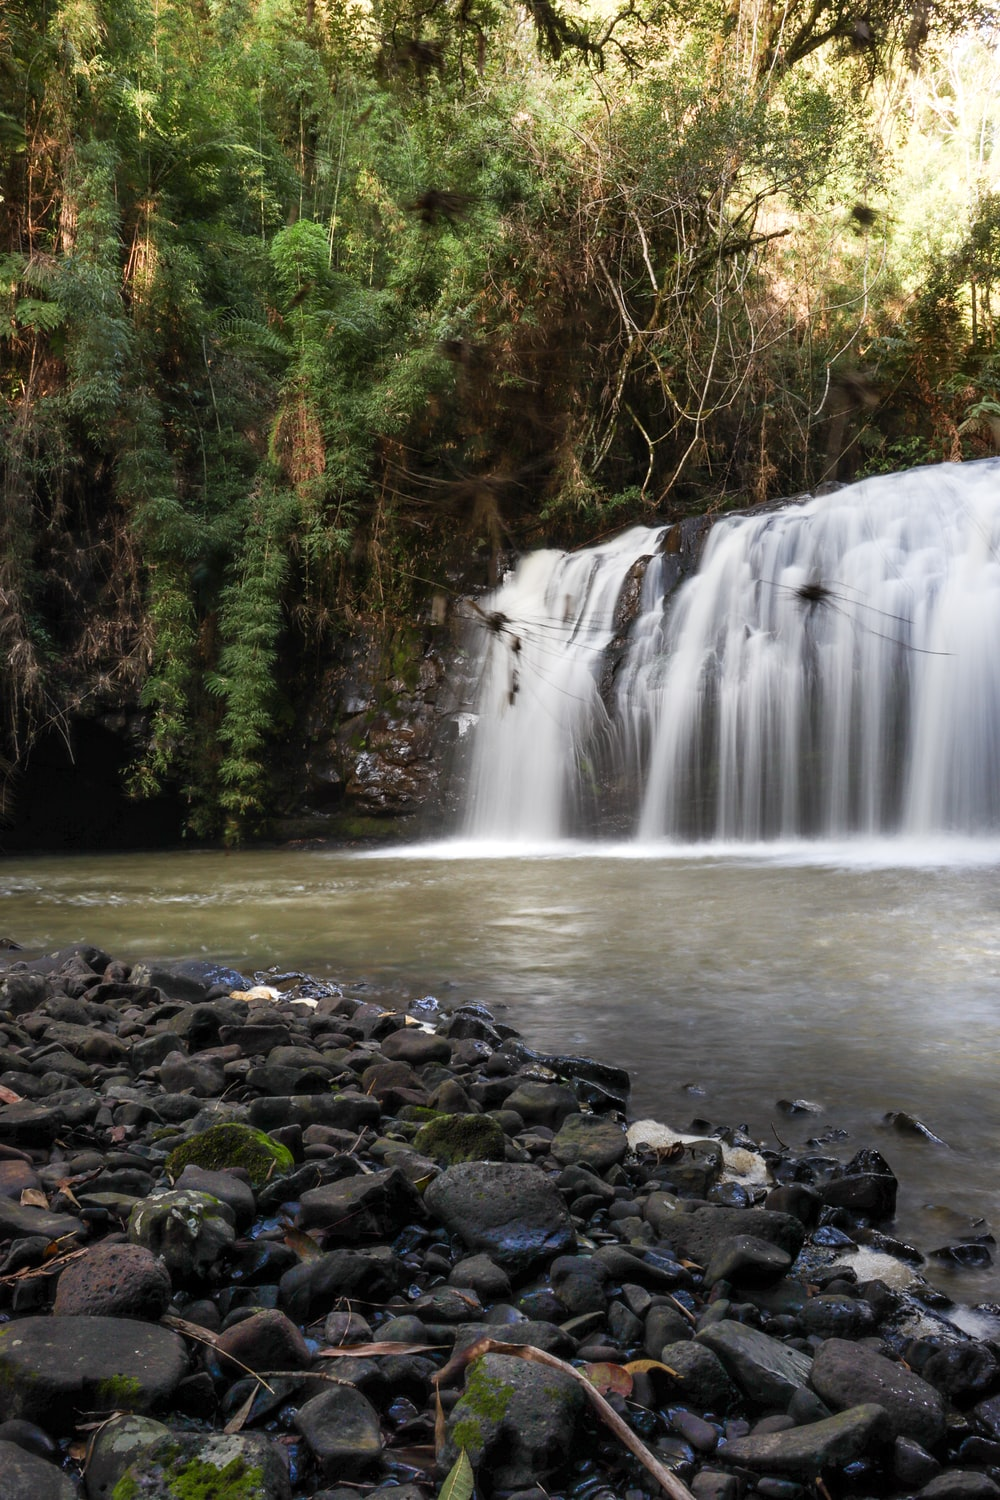 water falls surrounded by rocks and trees